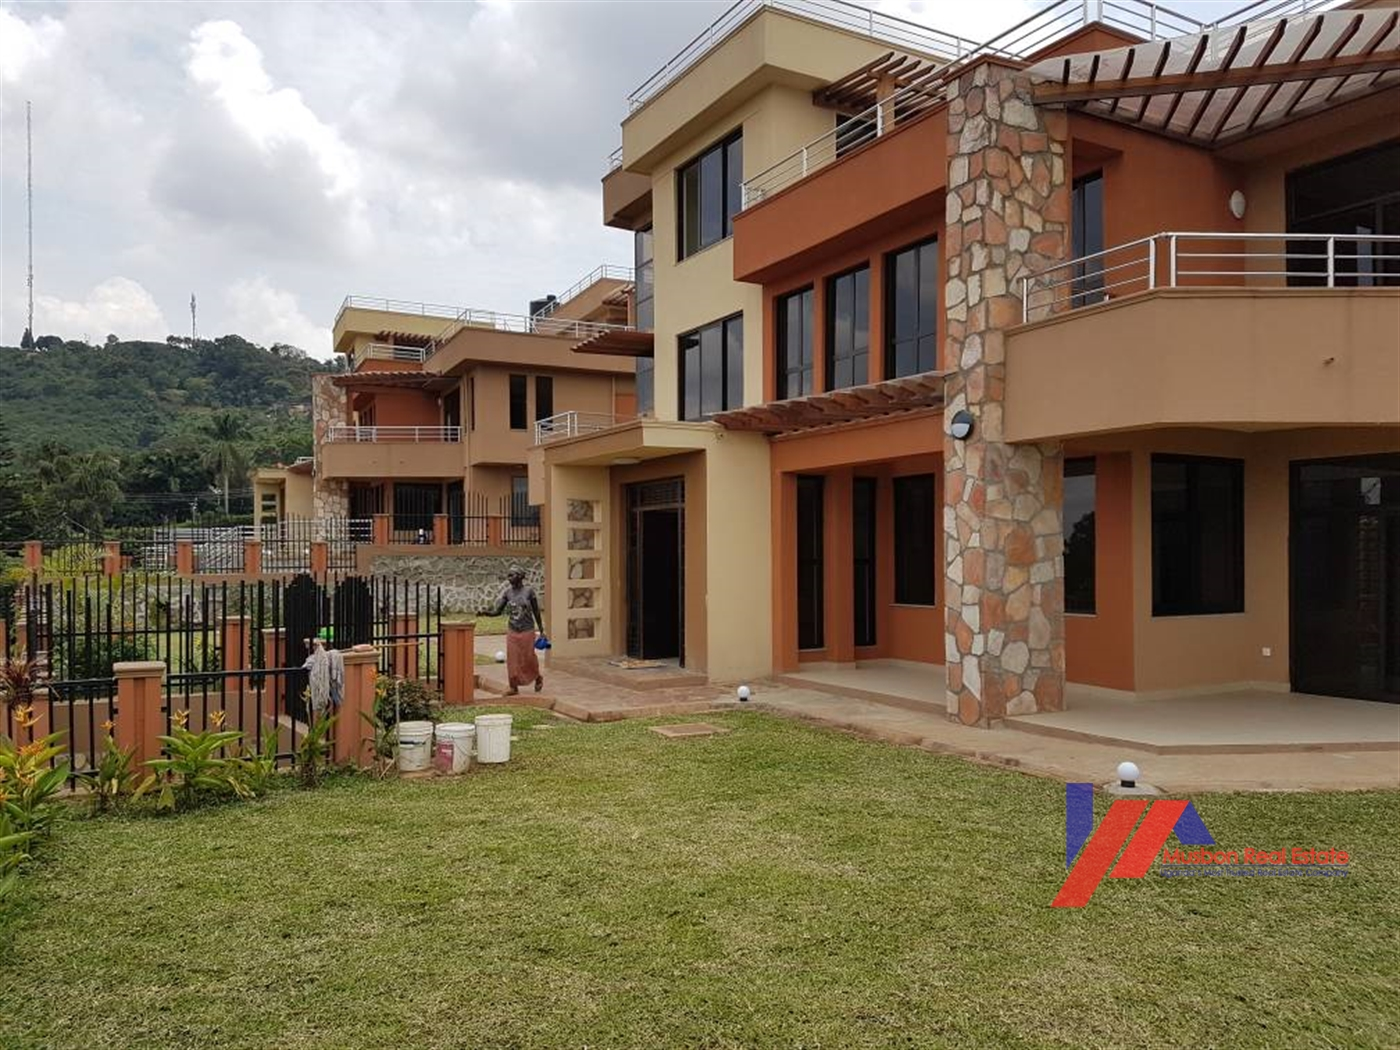 6 Bedroom Mansion For Sale In Munyonyo Kampala Uganda Code 33572 14 10 2020